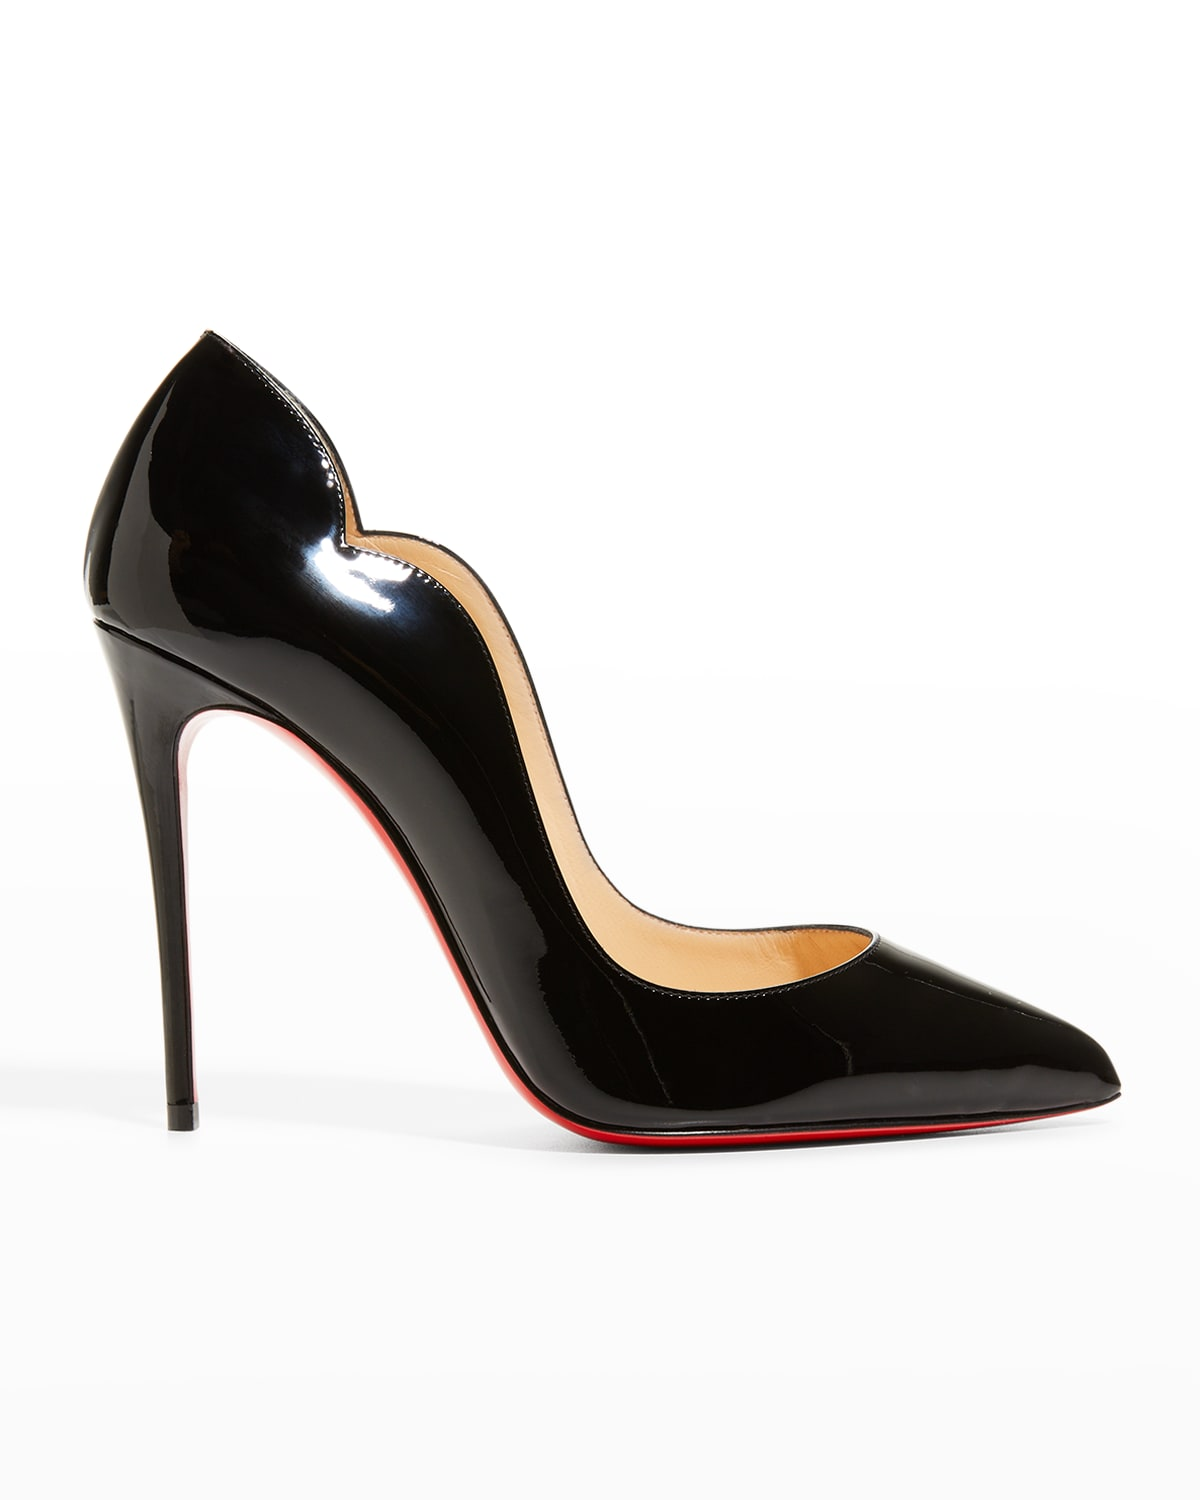 Hot Chick 100 Patent Red Sole High-Heel Pumps